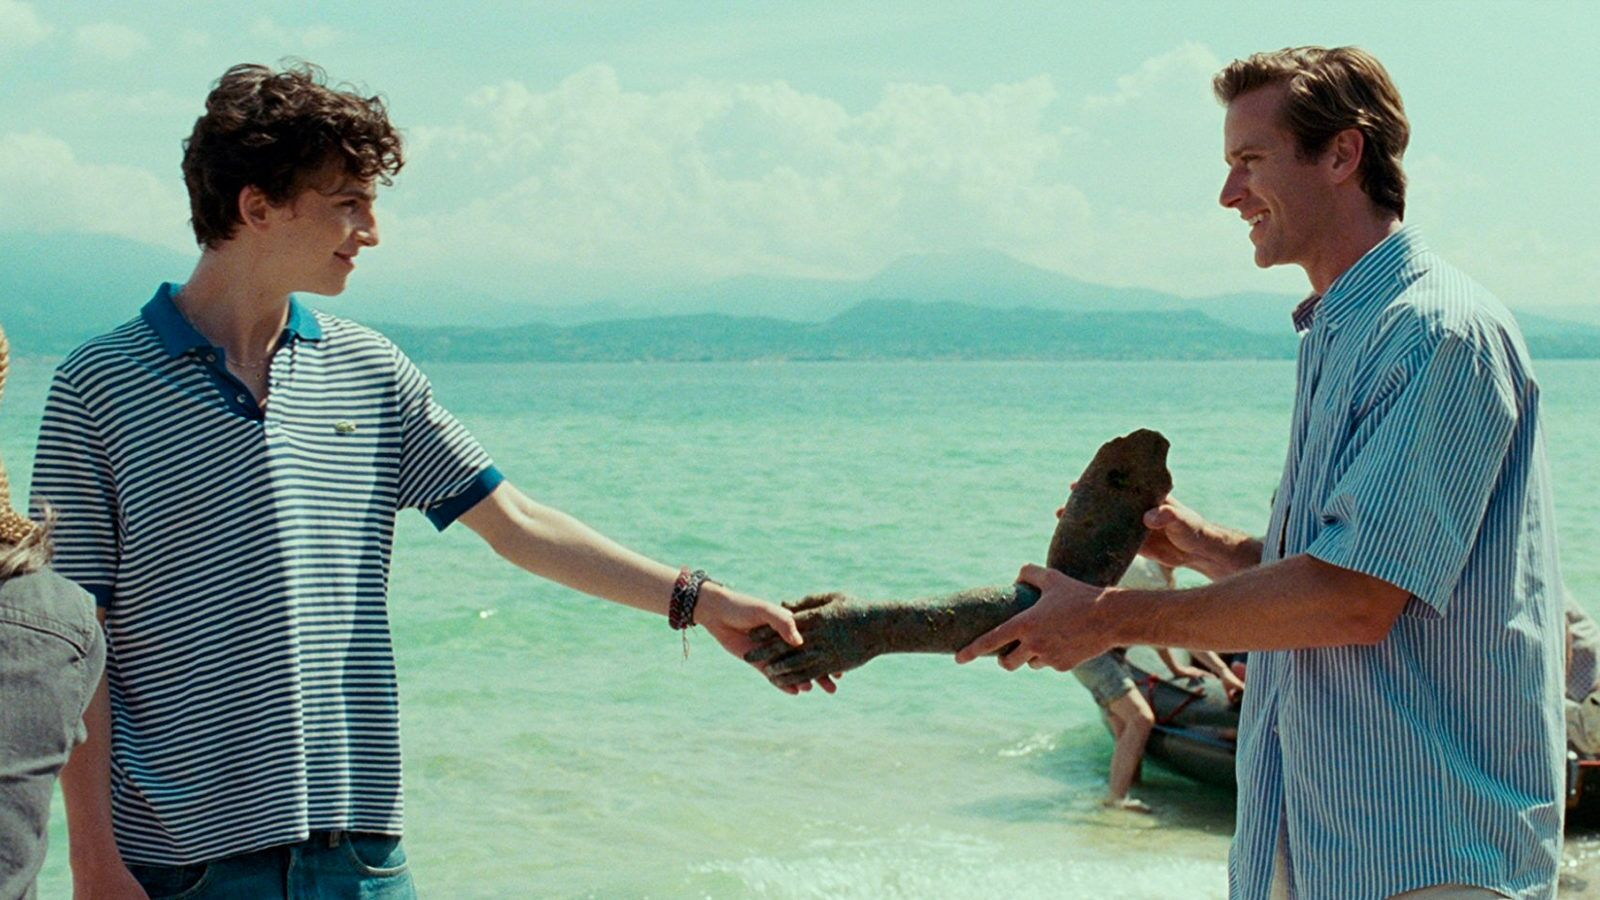 Call Me By Your Name is a dream you won't want to wake up from